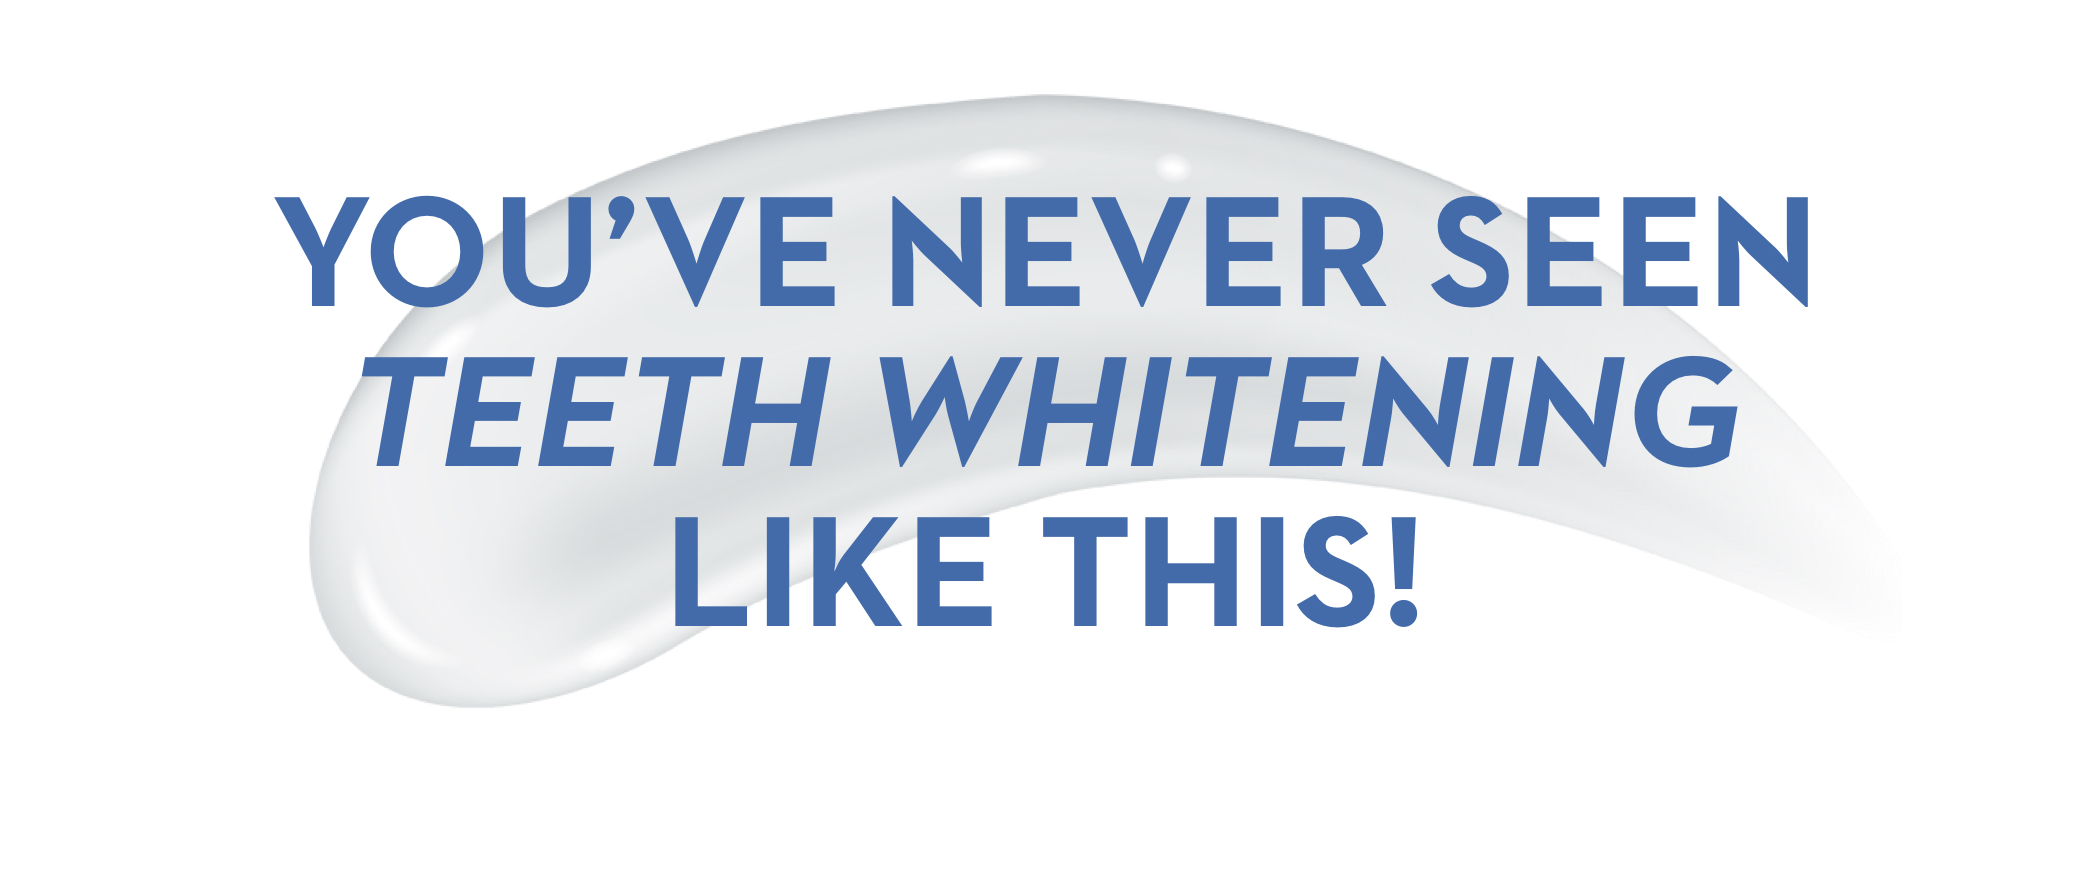 You've Never Seen Teeth Whitening Like This!